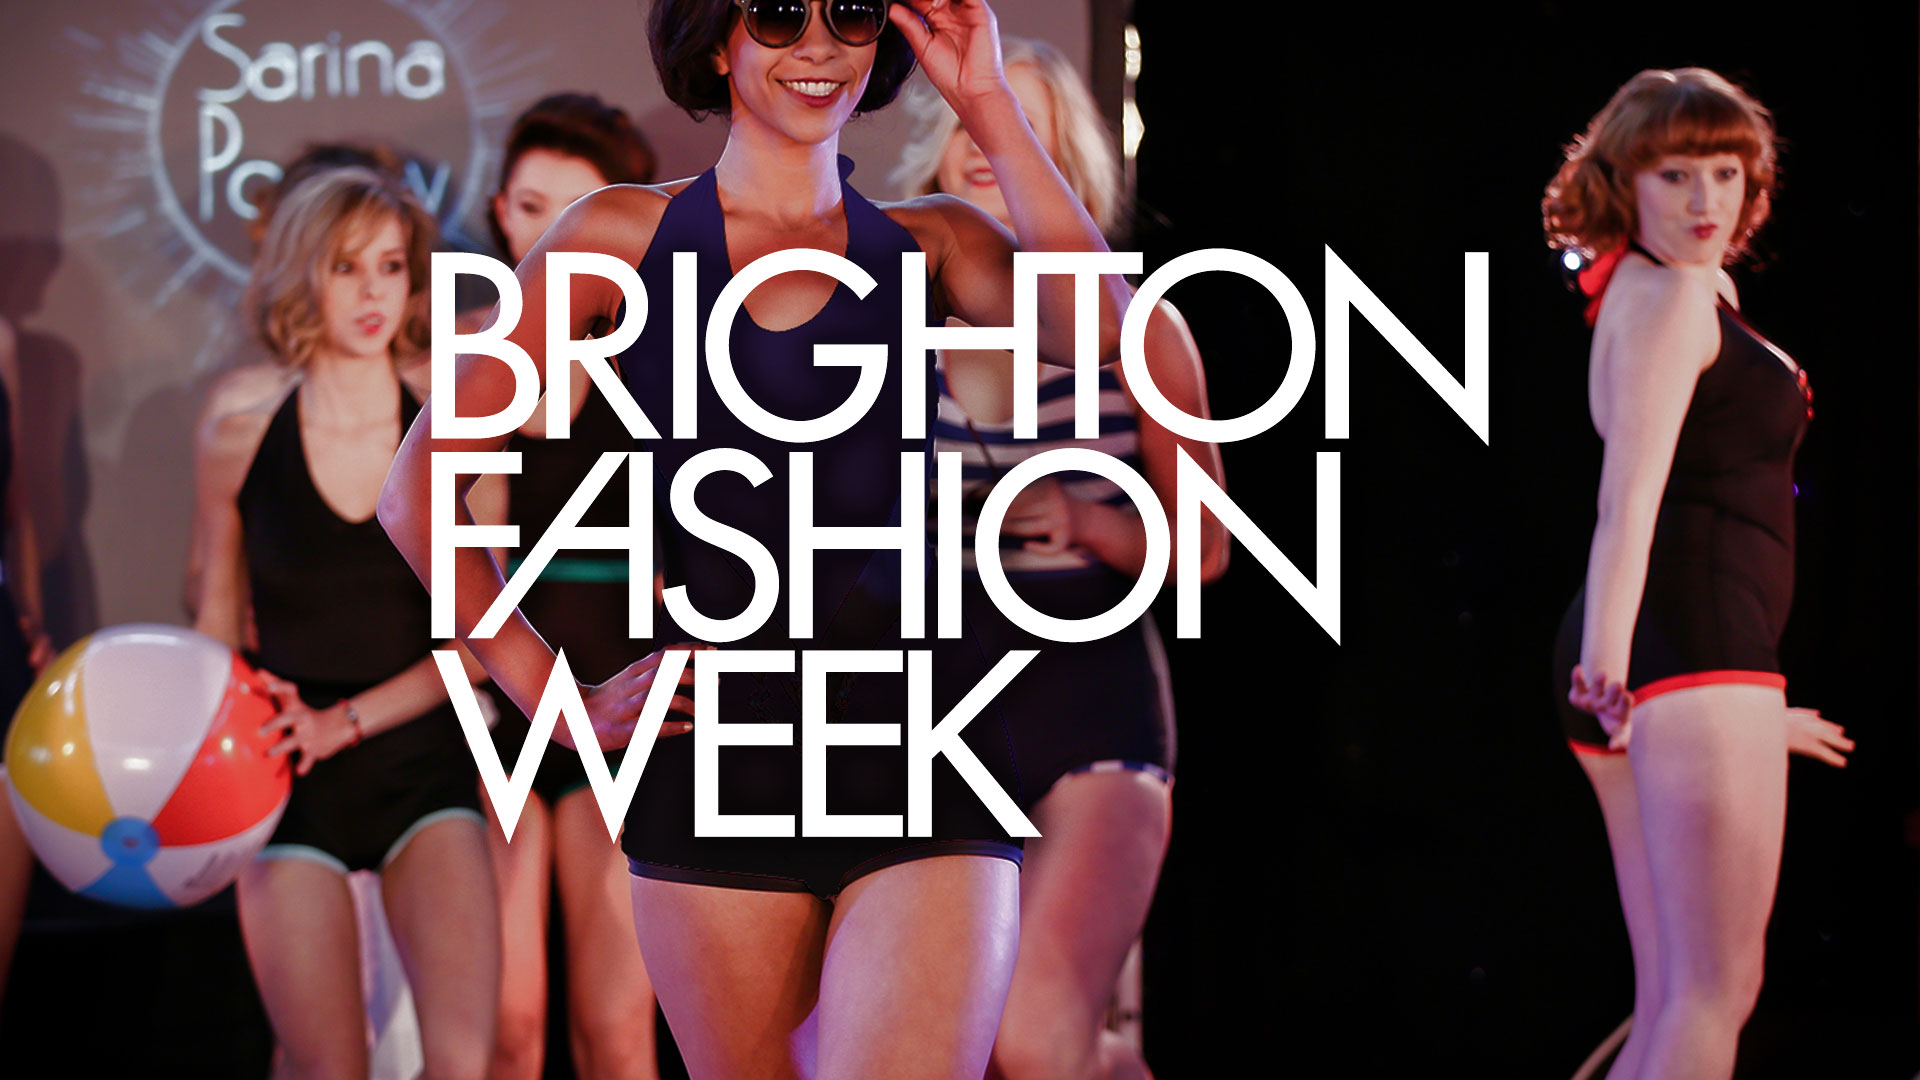 Poster for Brighton Fashion Week